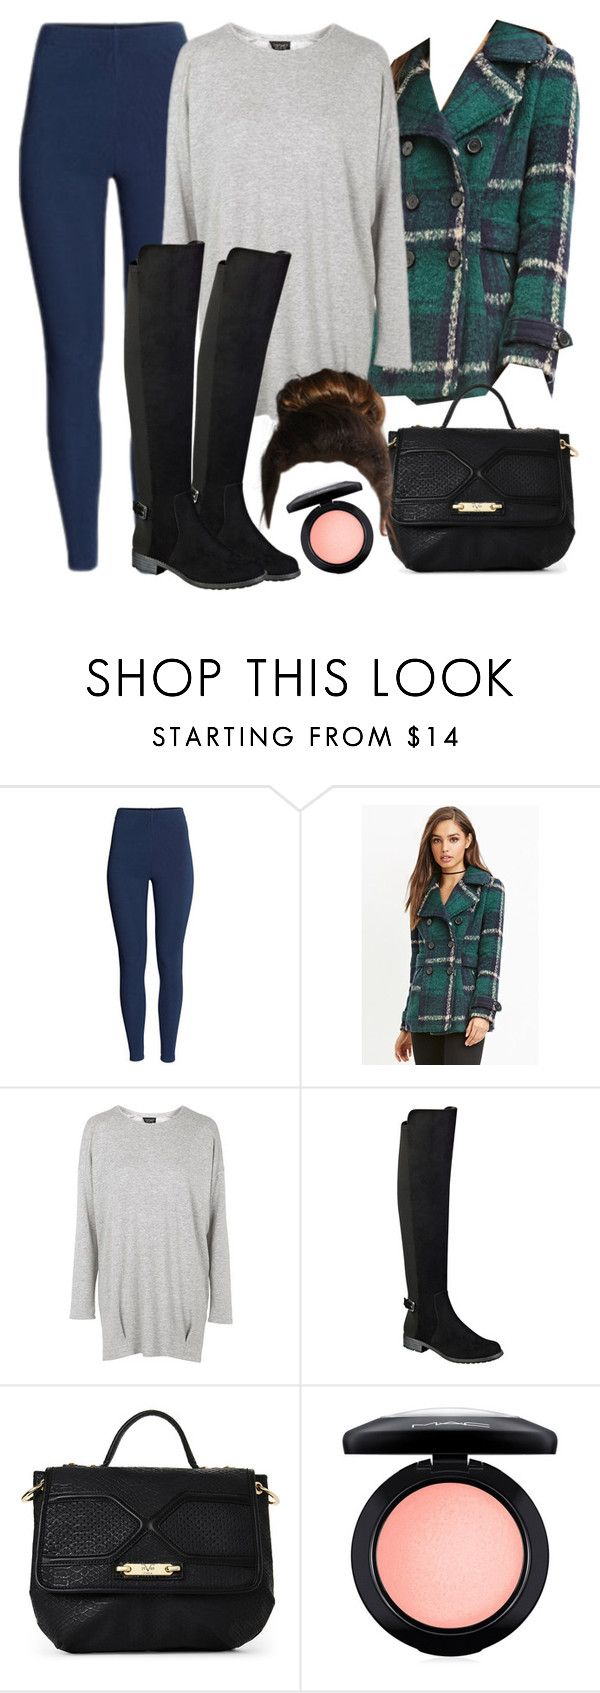 """""""Spencer Hastings inspired winter outfit with leggings"""" by liarsstyle ❤ liked on Polyvore featuring H&M, Forever 21, Topshop, Liz Claiborne, MAC Cosmetics, school, college and WF"""